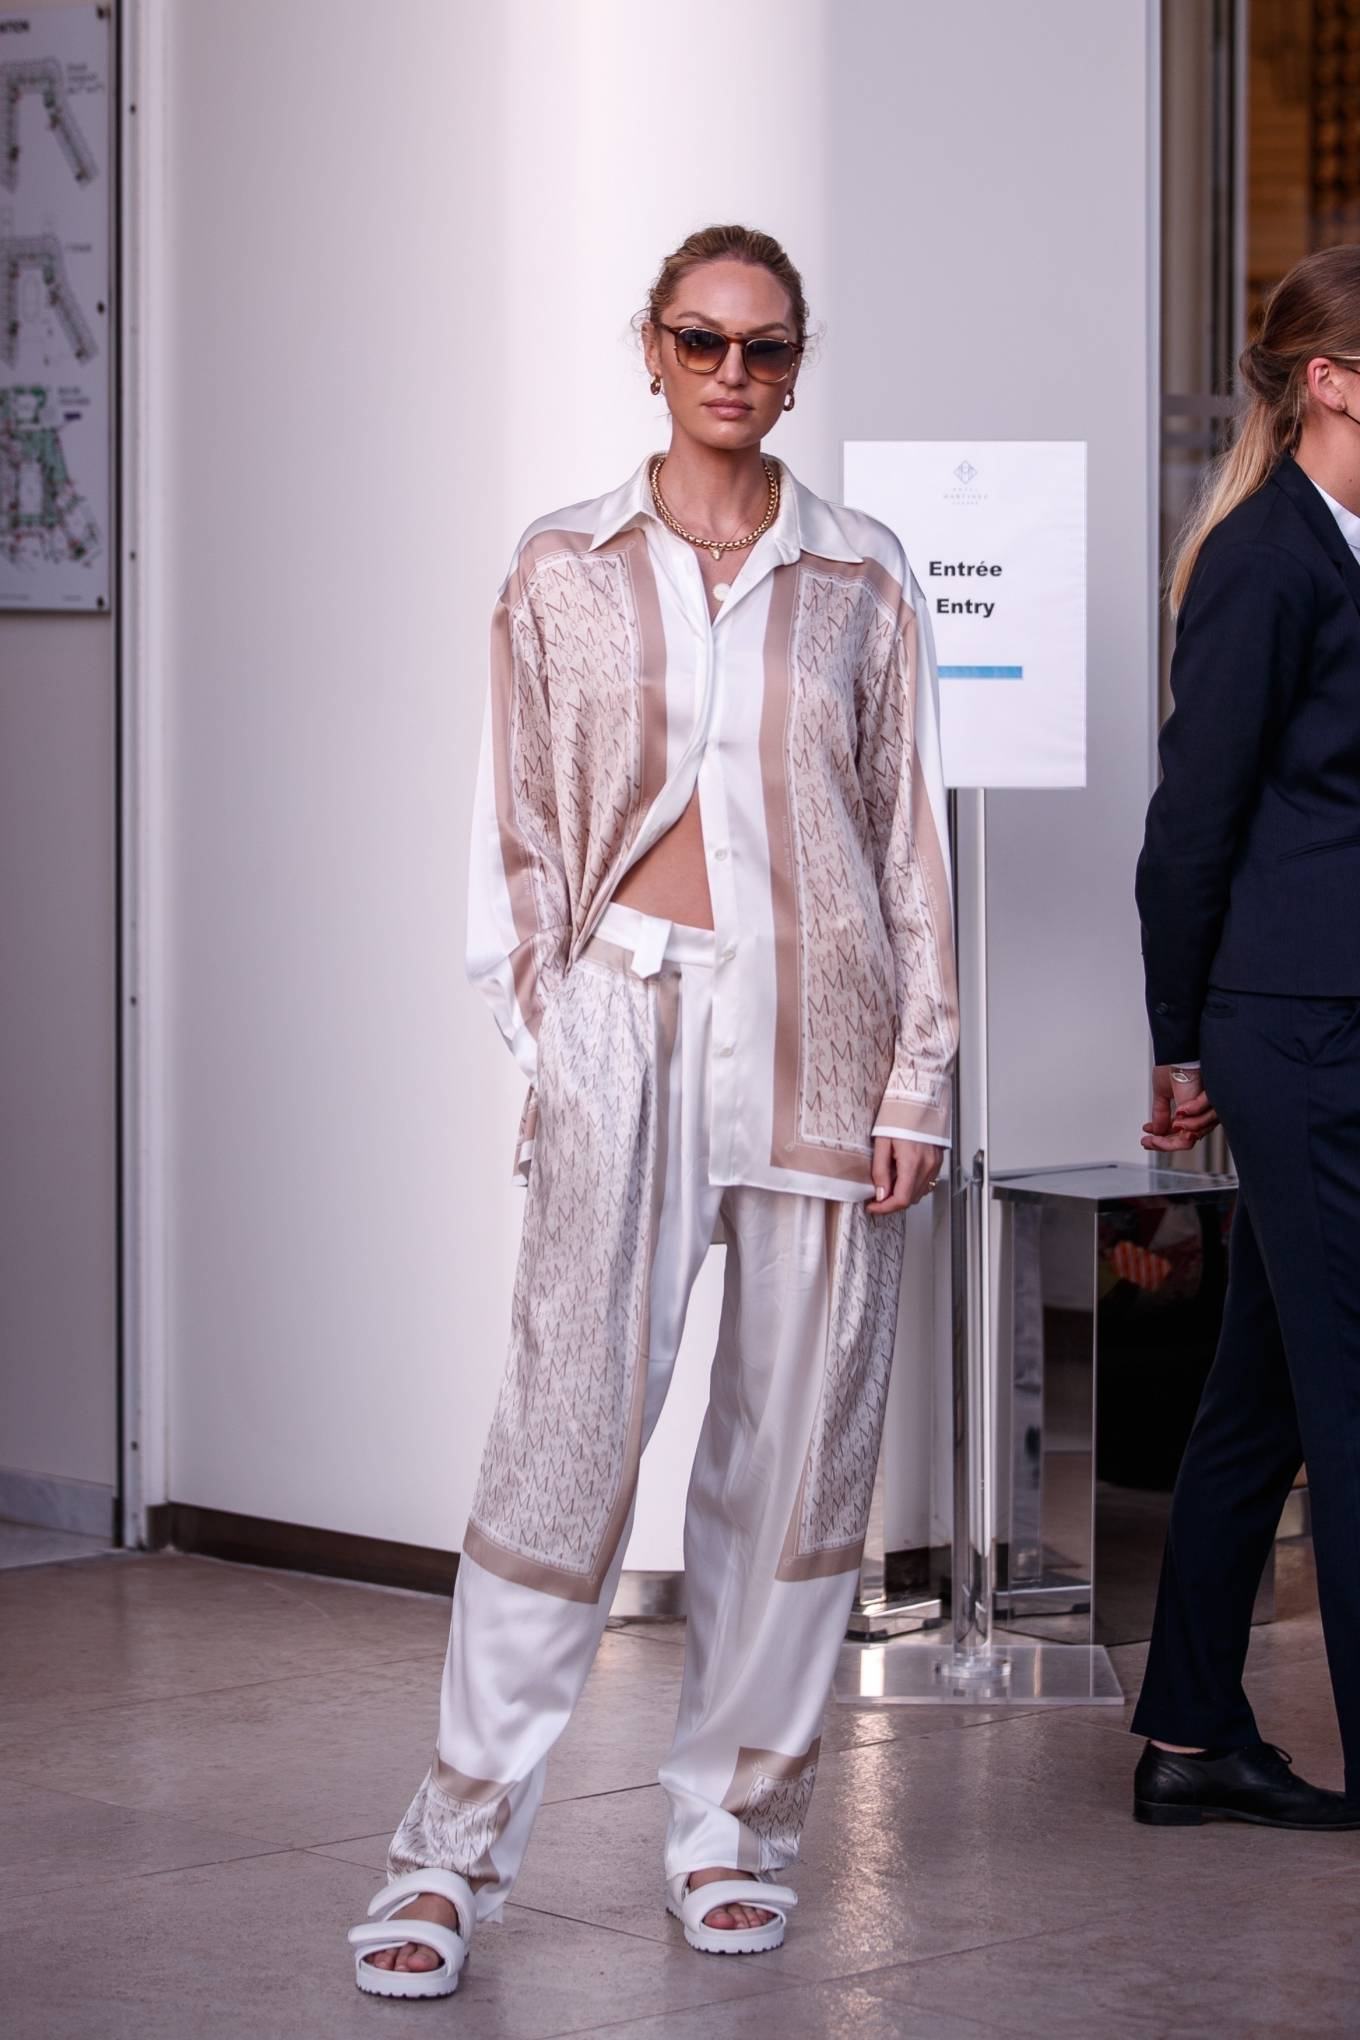 Candice Swanepoel donning round white two-strap sandals with chunky sole